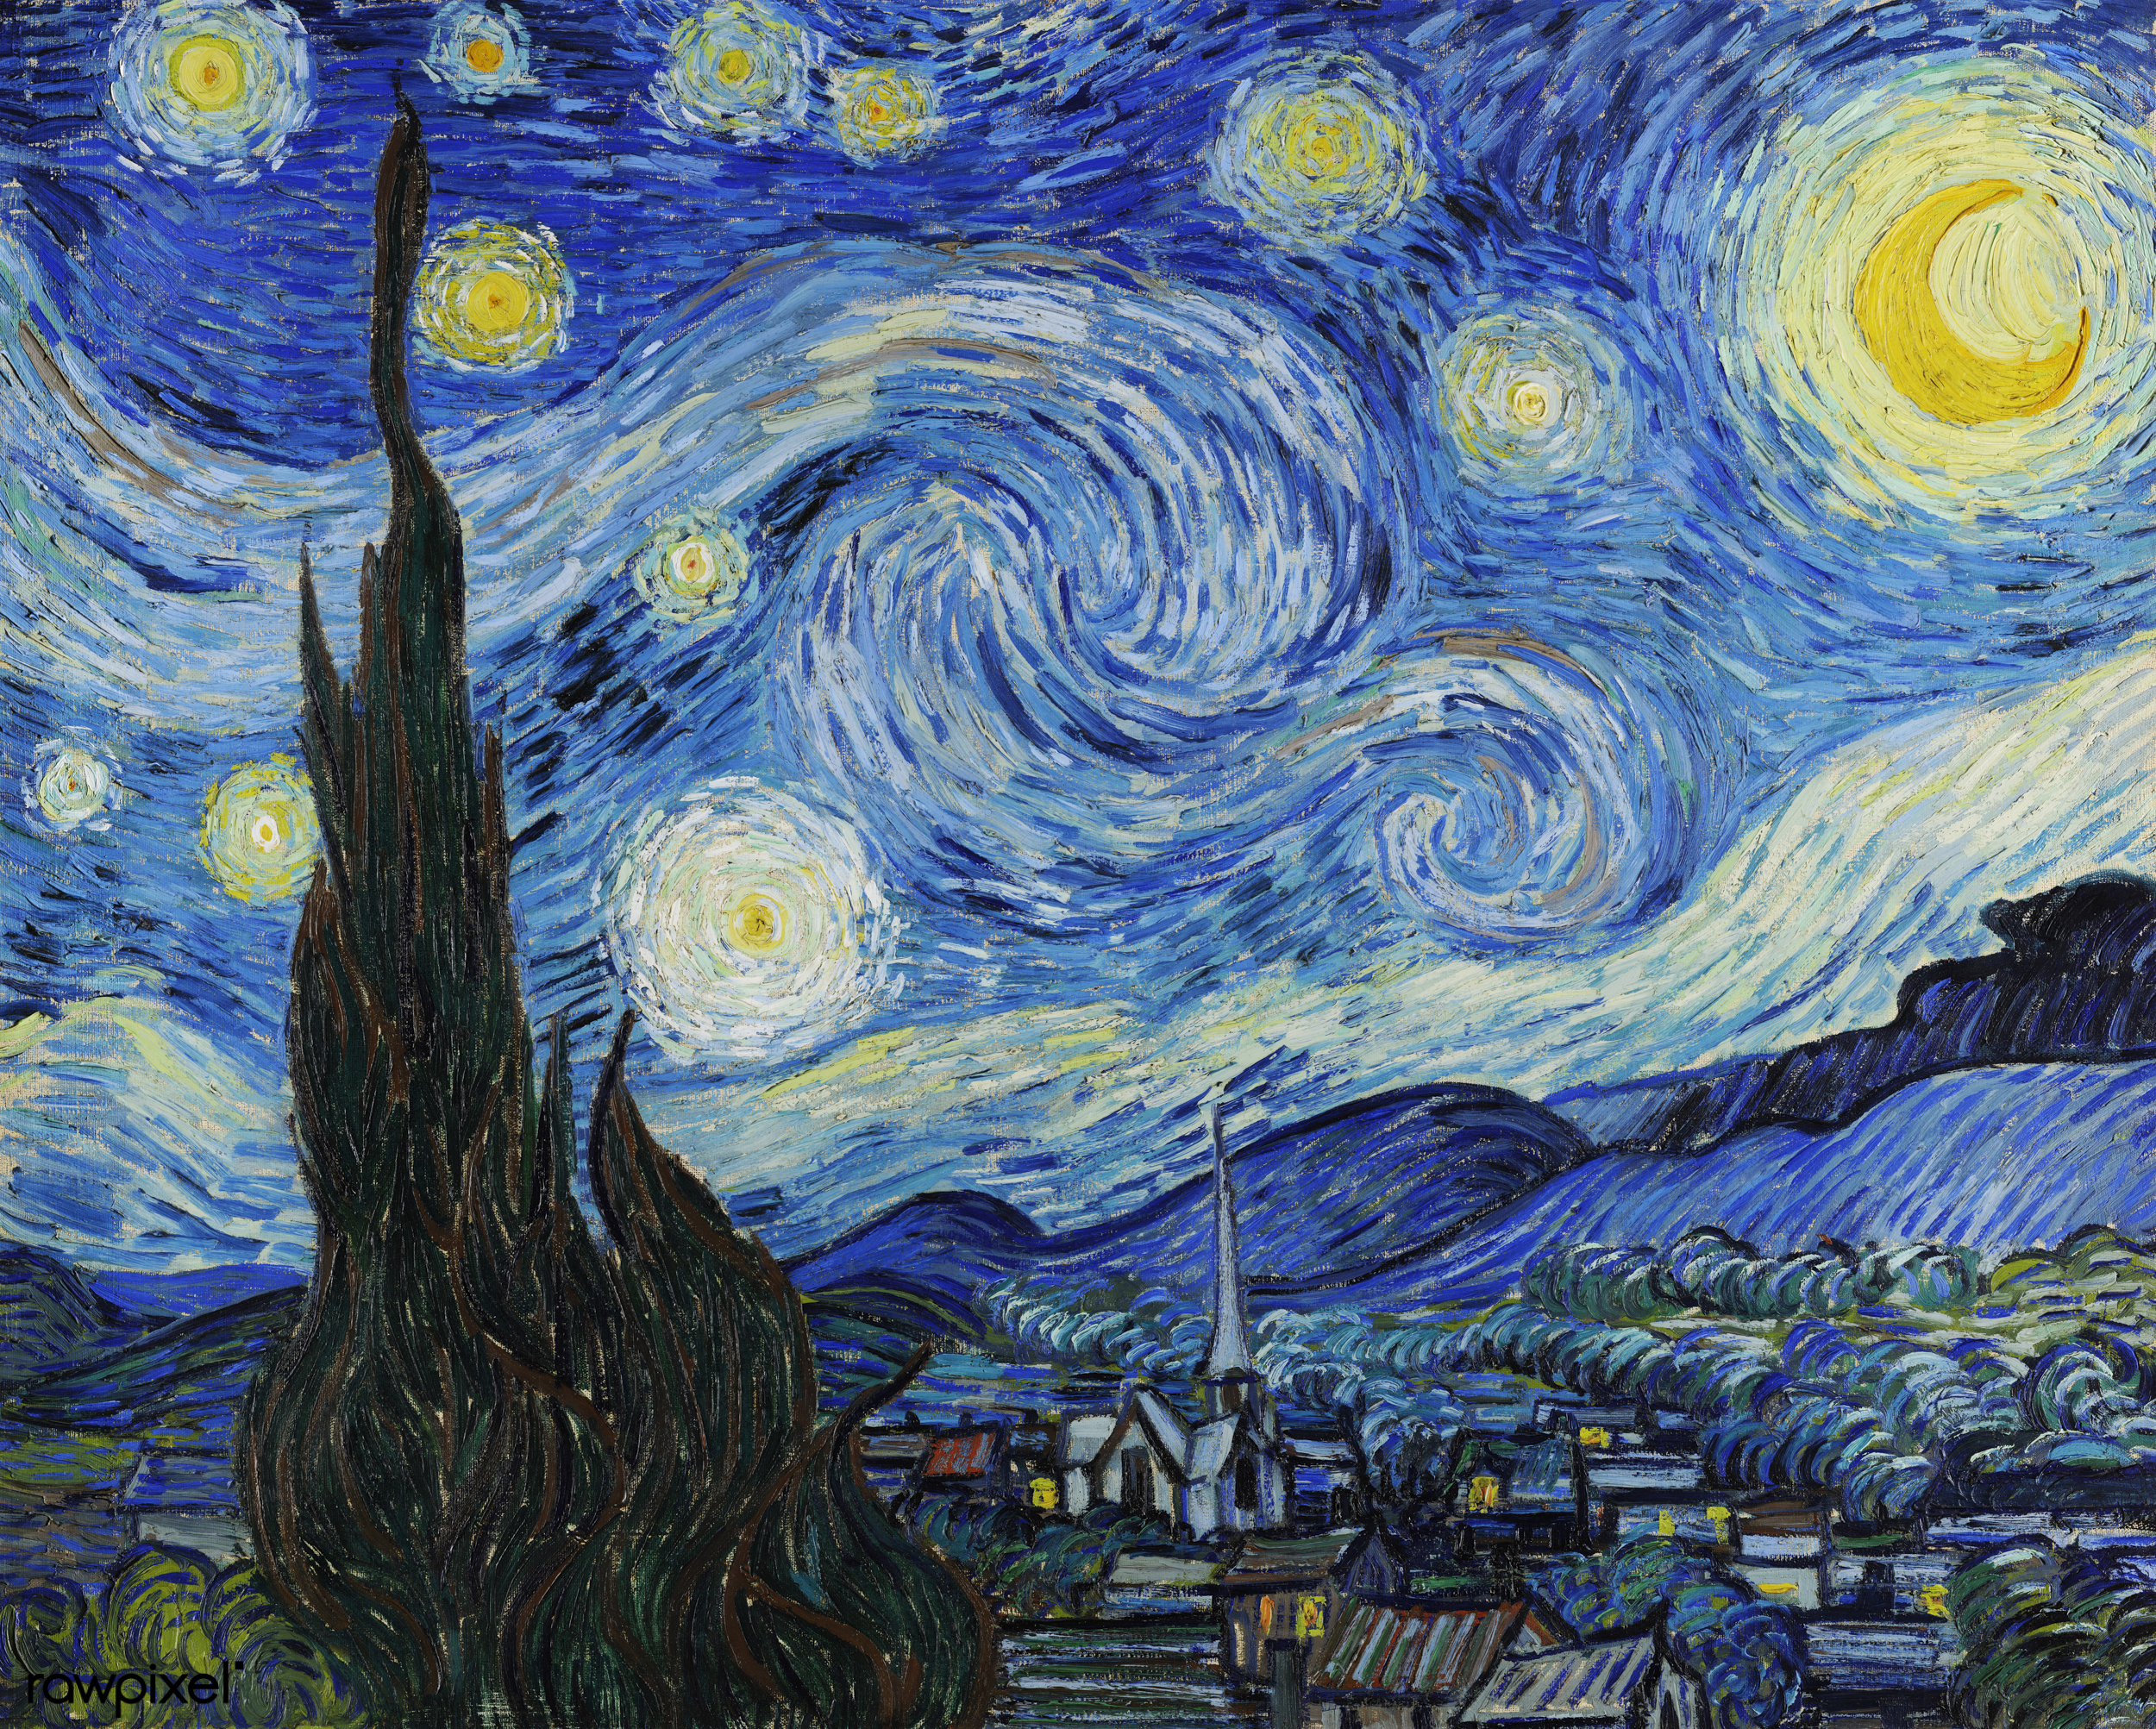 File:Vincent van Gogh's famous painting, digitally enhanced by rawpixel-com 46.jpg - Wikimedia Commons